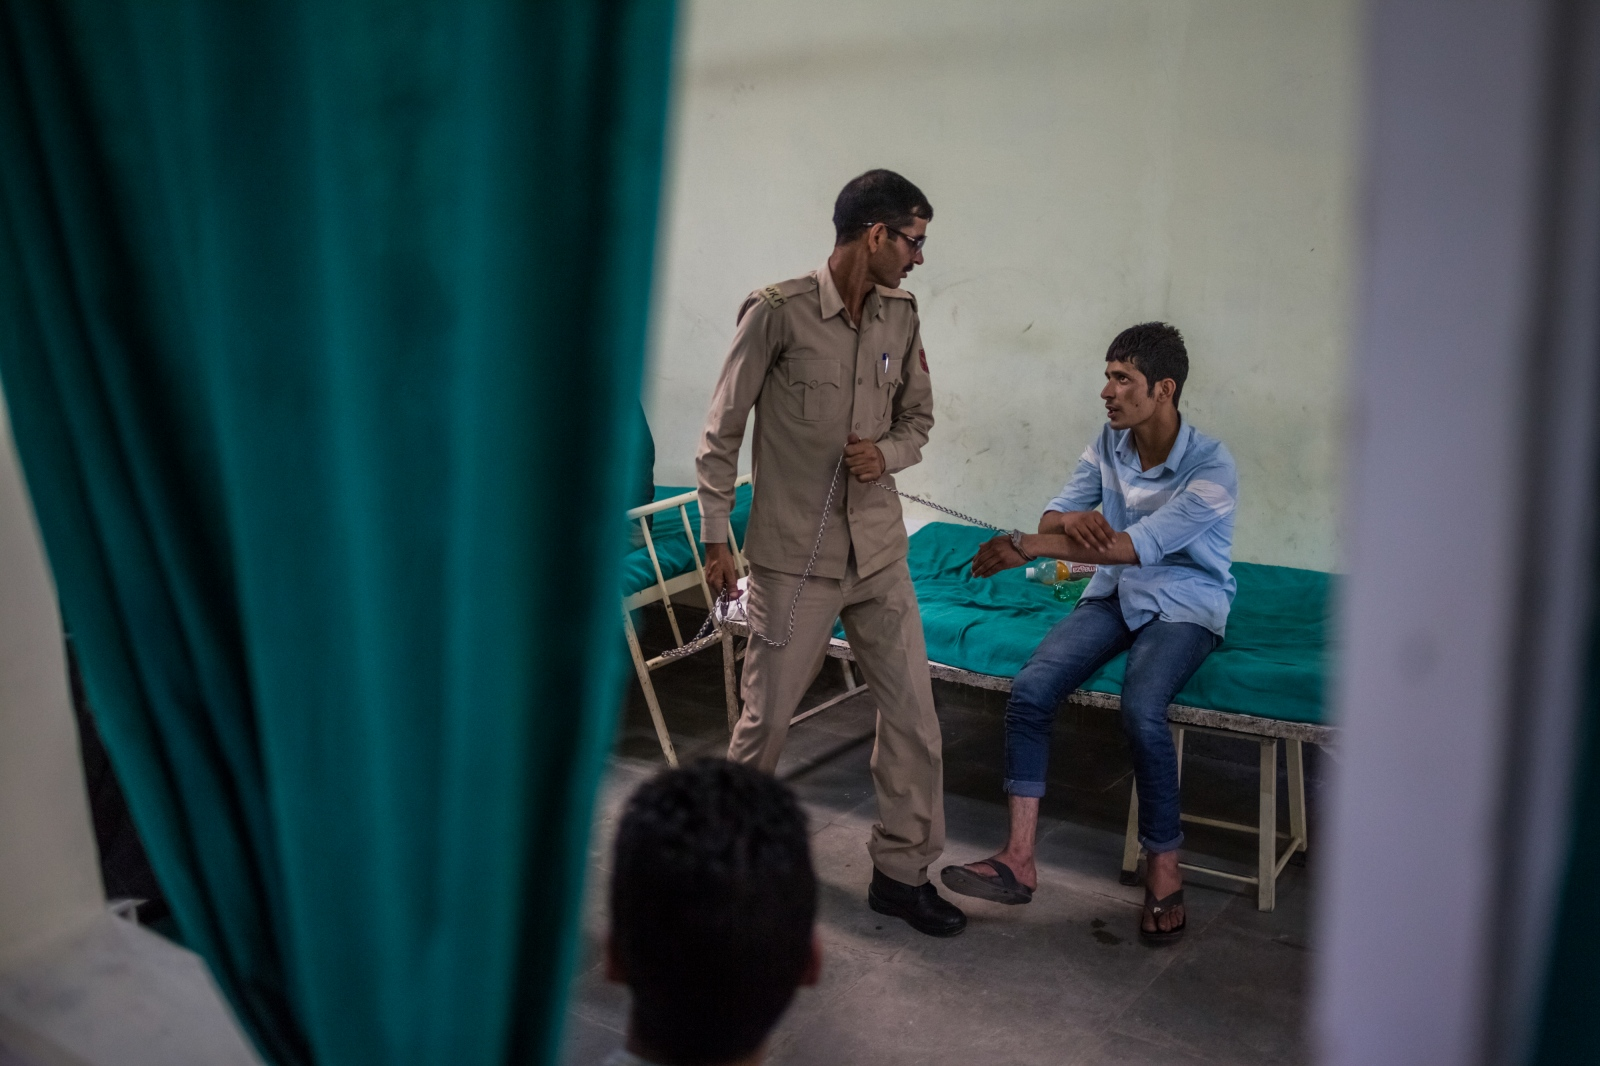 A Jammu and Kashmir police personnel tugs at a chain attached to handcuffs restraining Kashmiri resident Arsalan Mushtaq, 20, as they prepare to leave the casualty ward at the Psychiatric Diseases government hospital in Srinagar on June 13, 2016. Mushtaq was arrested following a disturbance at his home the evening before, and brought to the hospital for assessment. Police personnel with him said he was both a drug addict and a stone-pelter and was due to be brought before a court later that day. Mushtaq kept repeating that he was 'mentally and physically fit'.